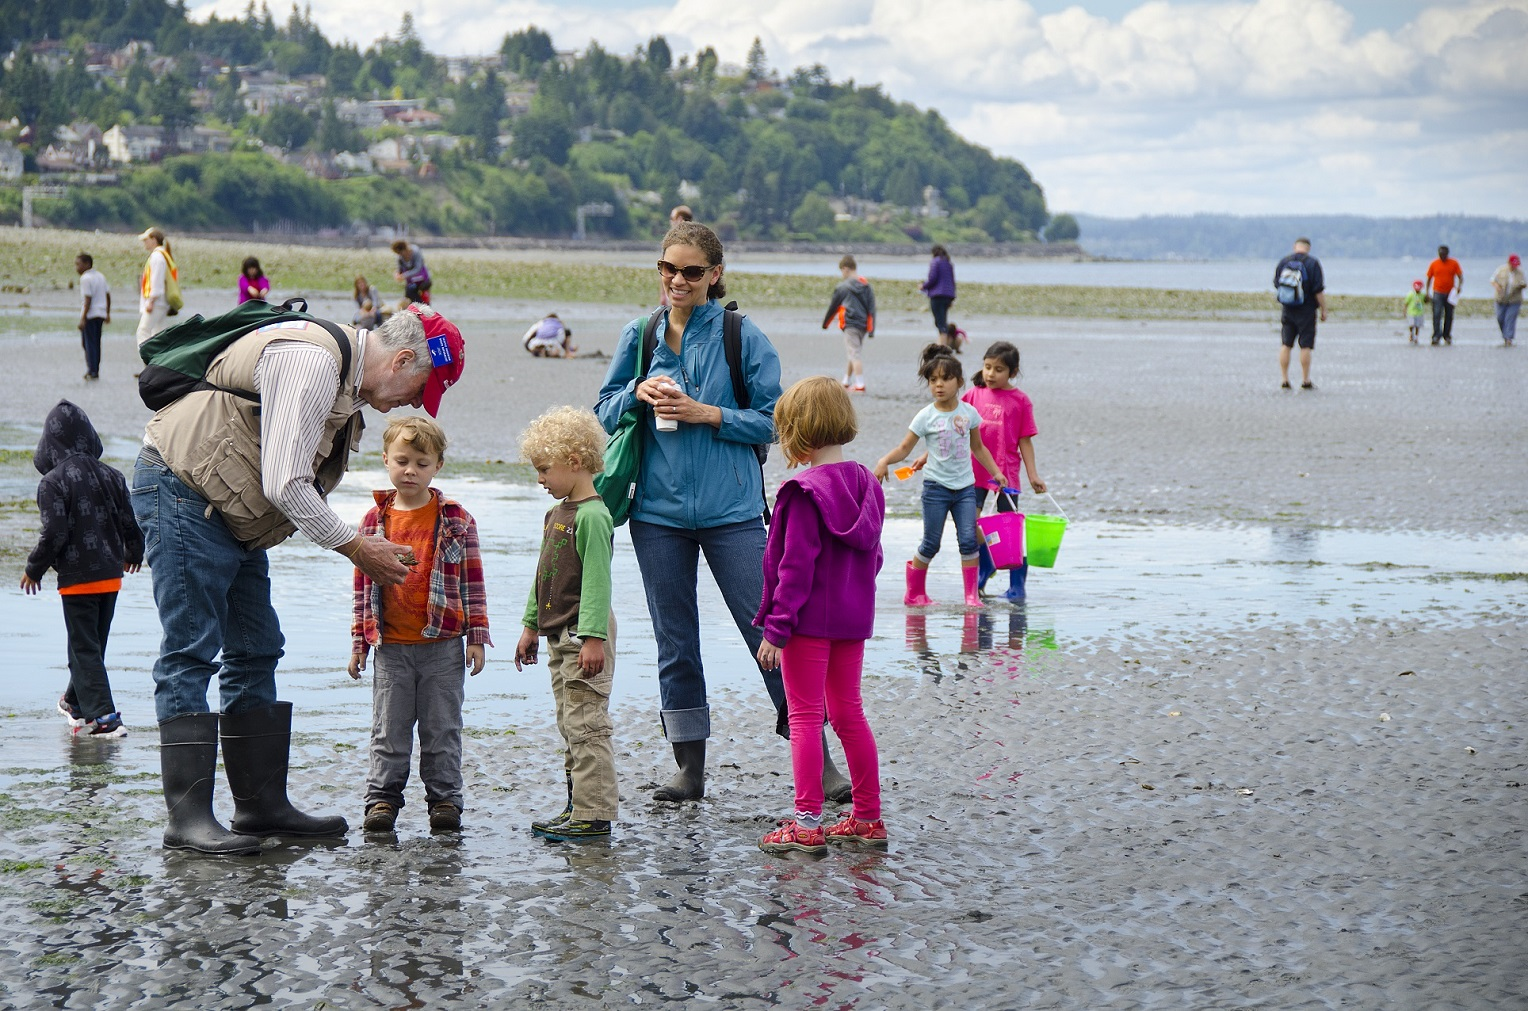 Beach naturalists on local Seattle beach speaking to visitors